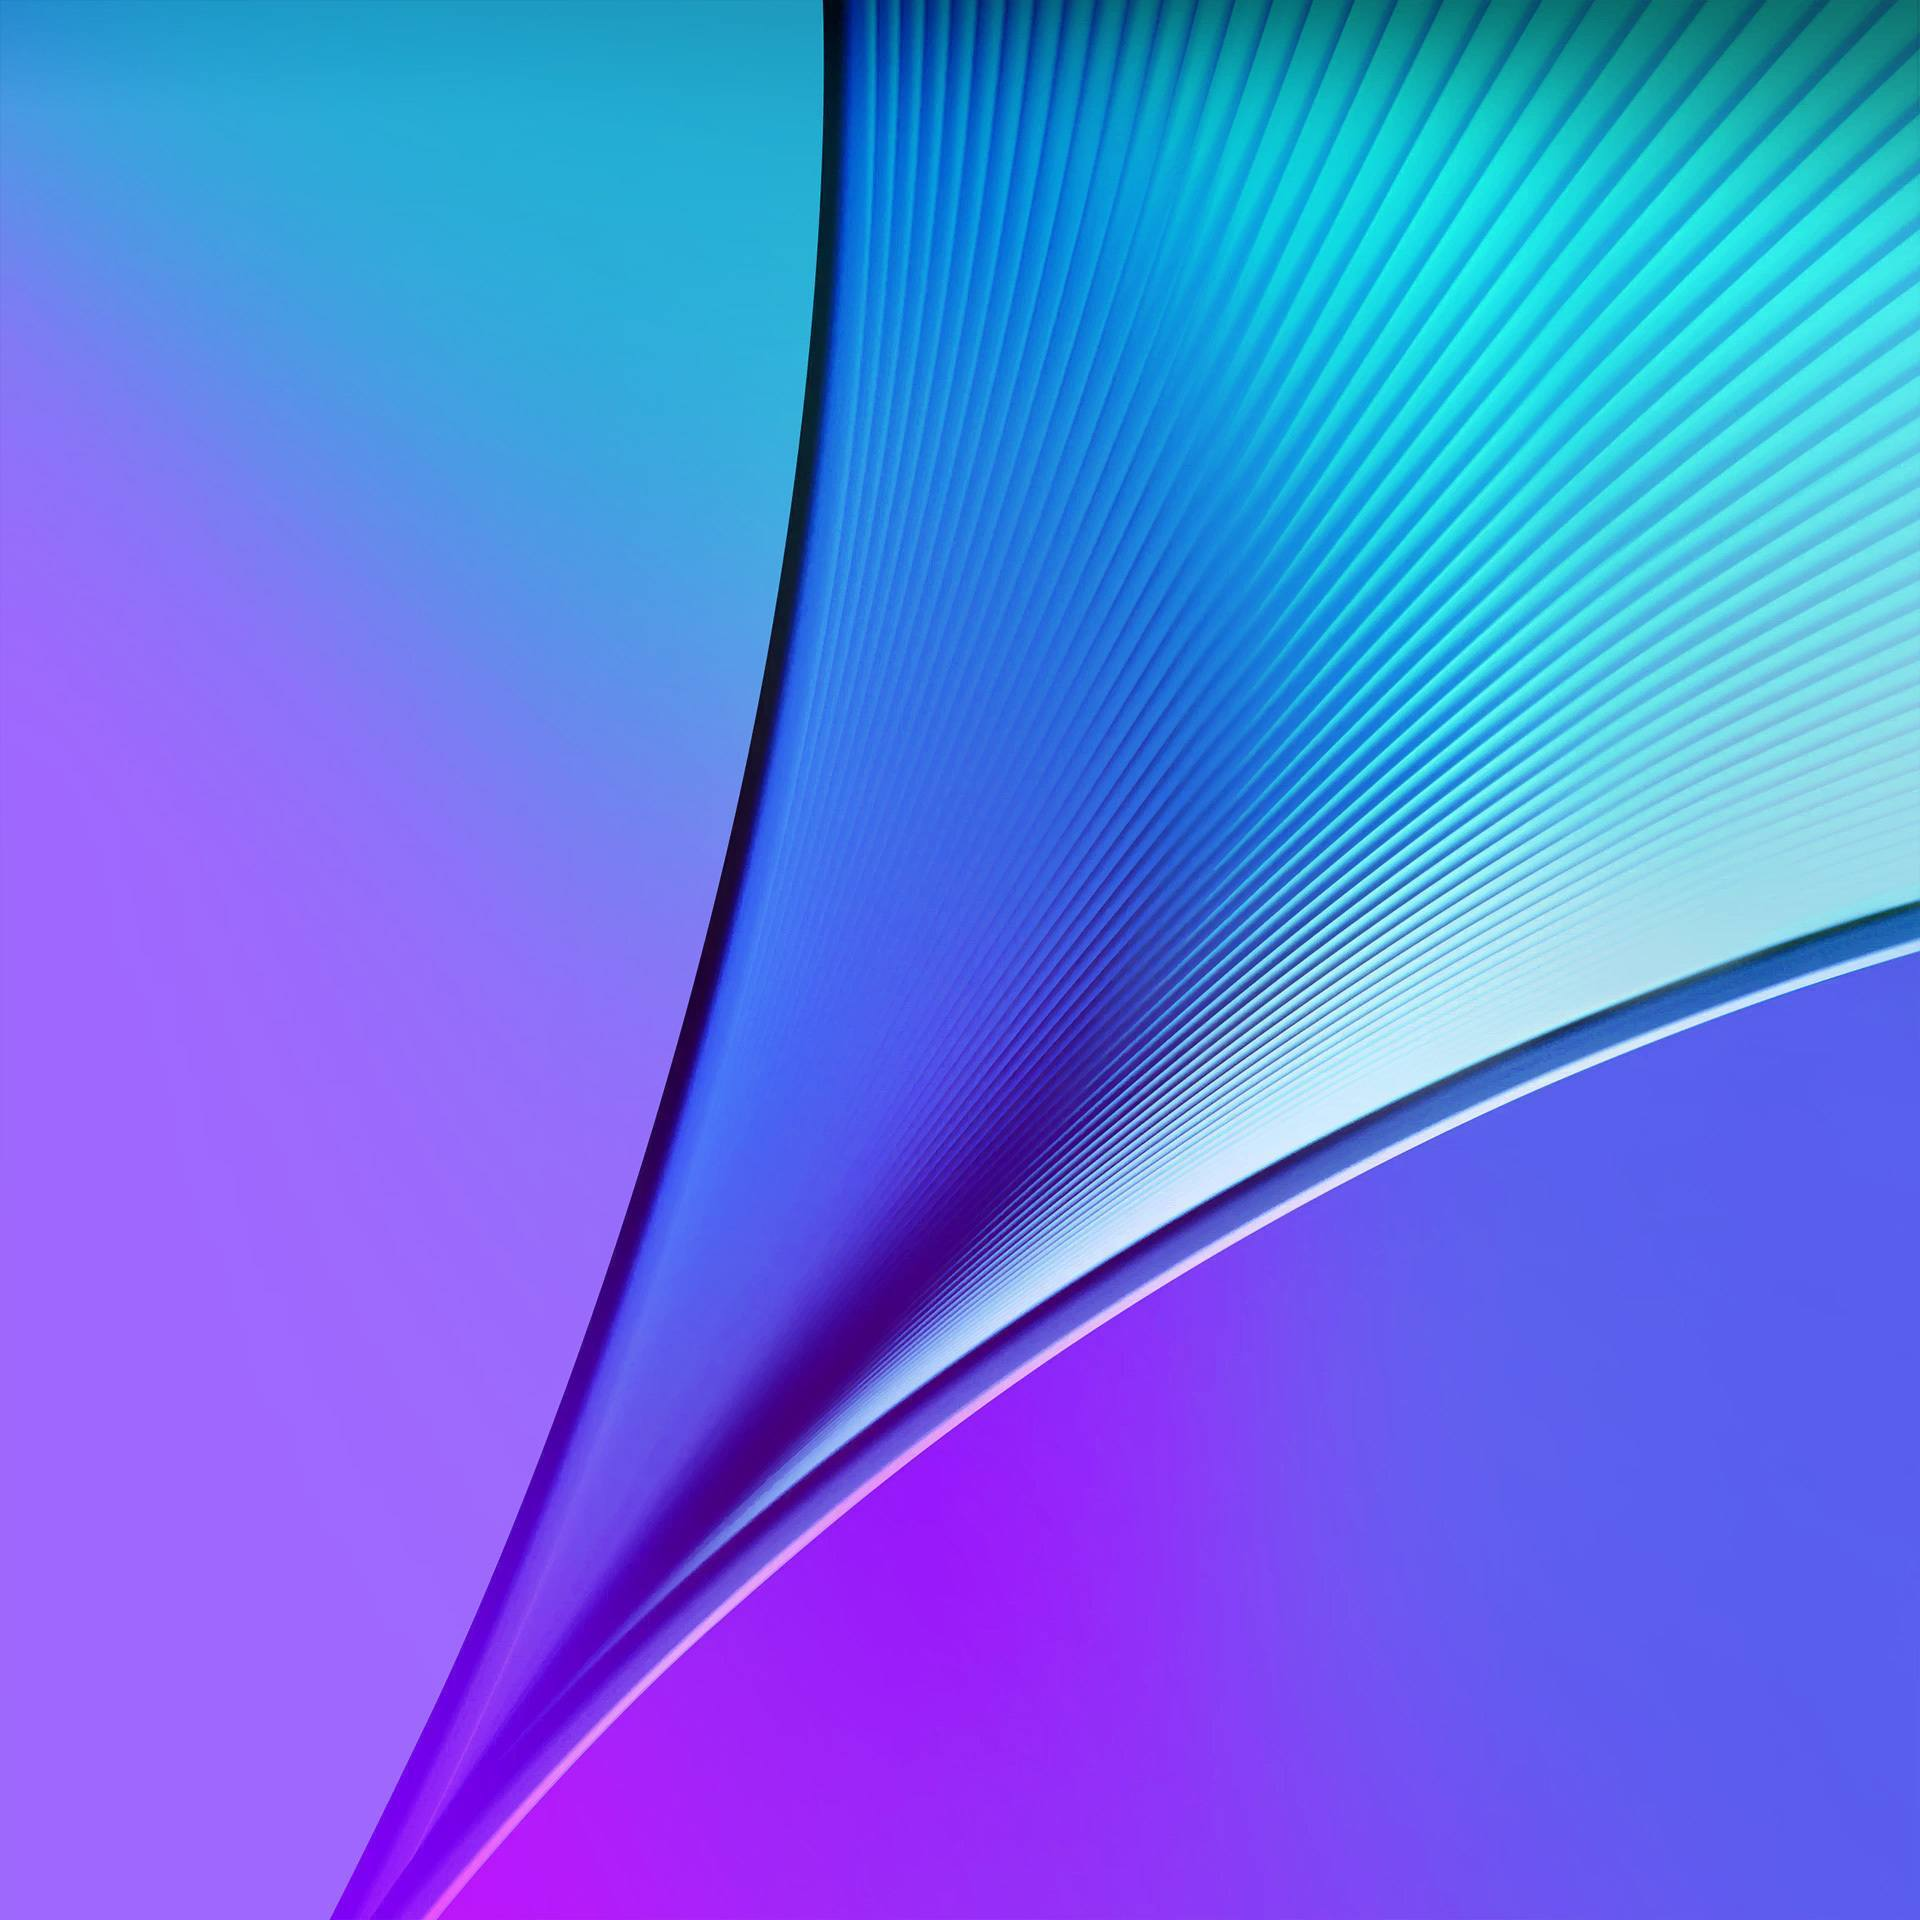 Hd wallpaper for samsung j7 - On Samsung Smartphones And Their Stock Wallpapers Stay Tuned With Us